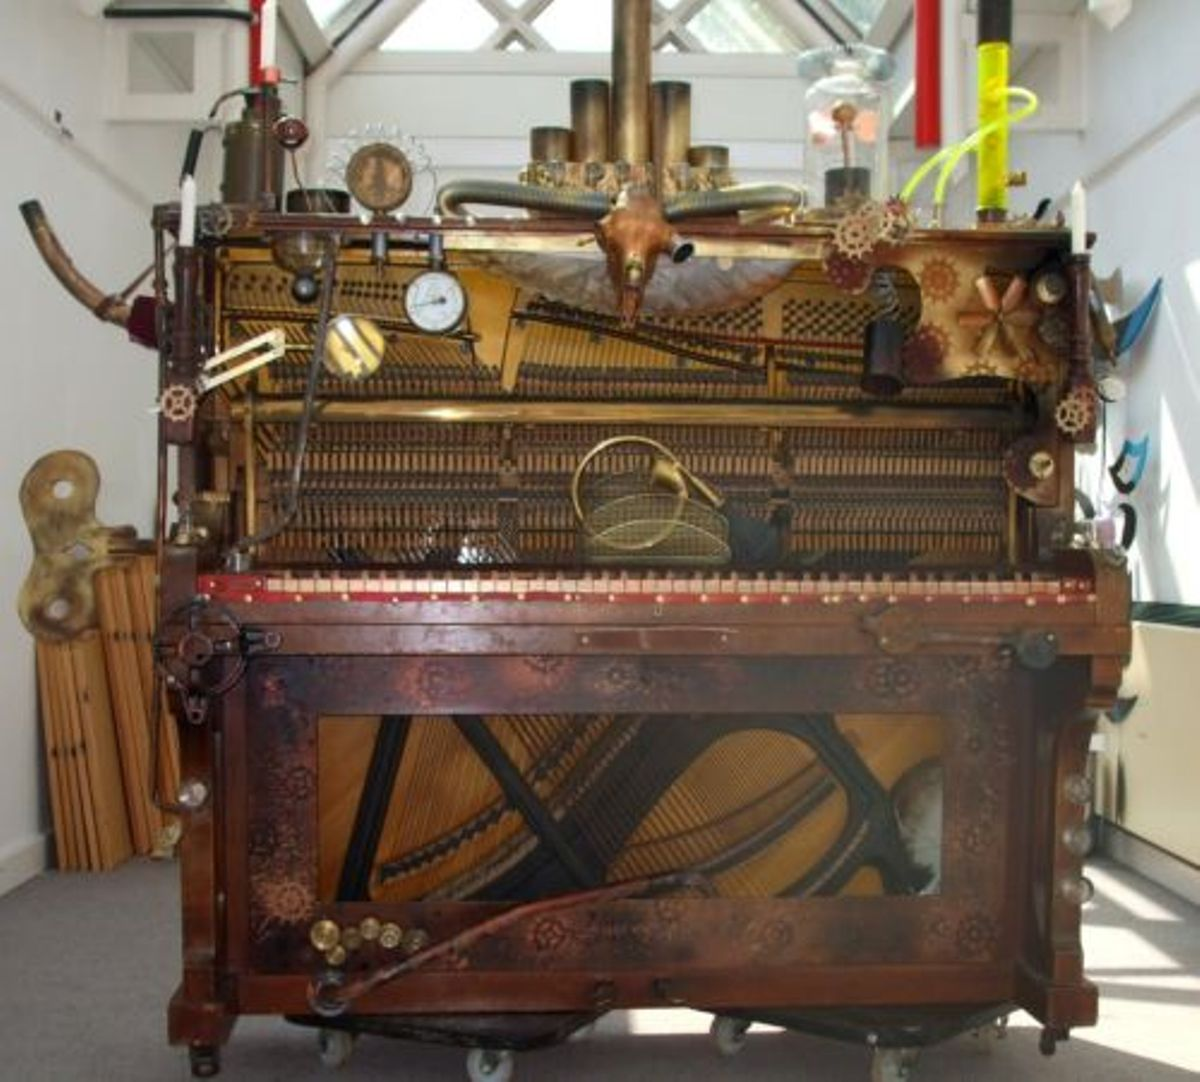 Mumford and Sons' steampunk piano modified in Lewes on sale